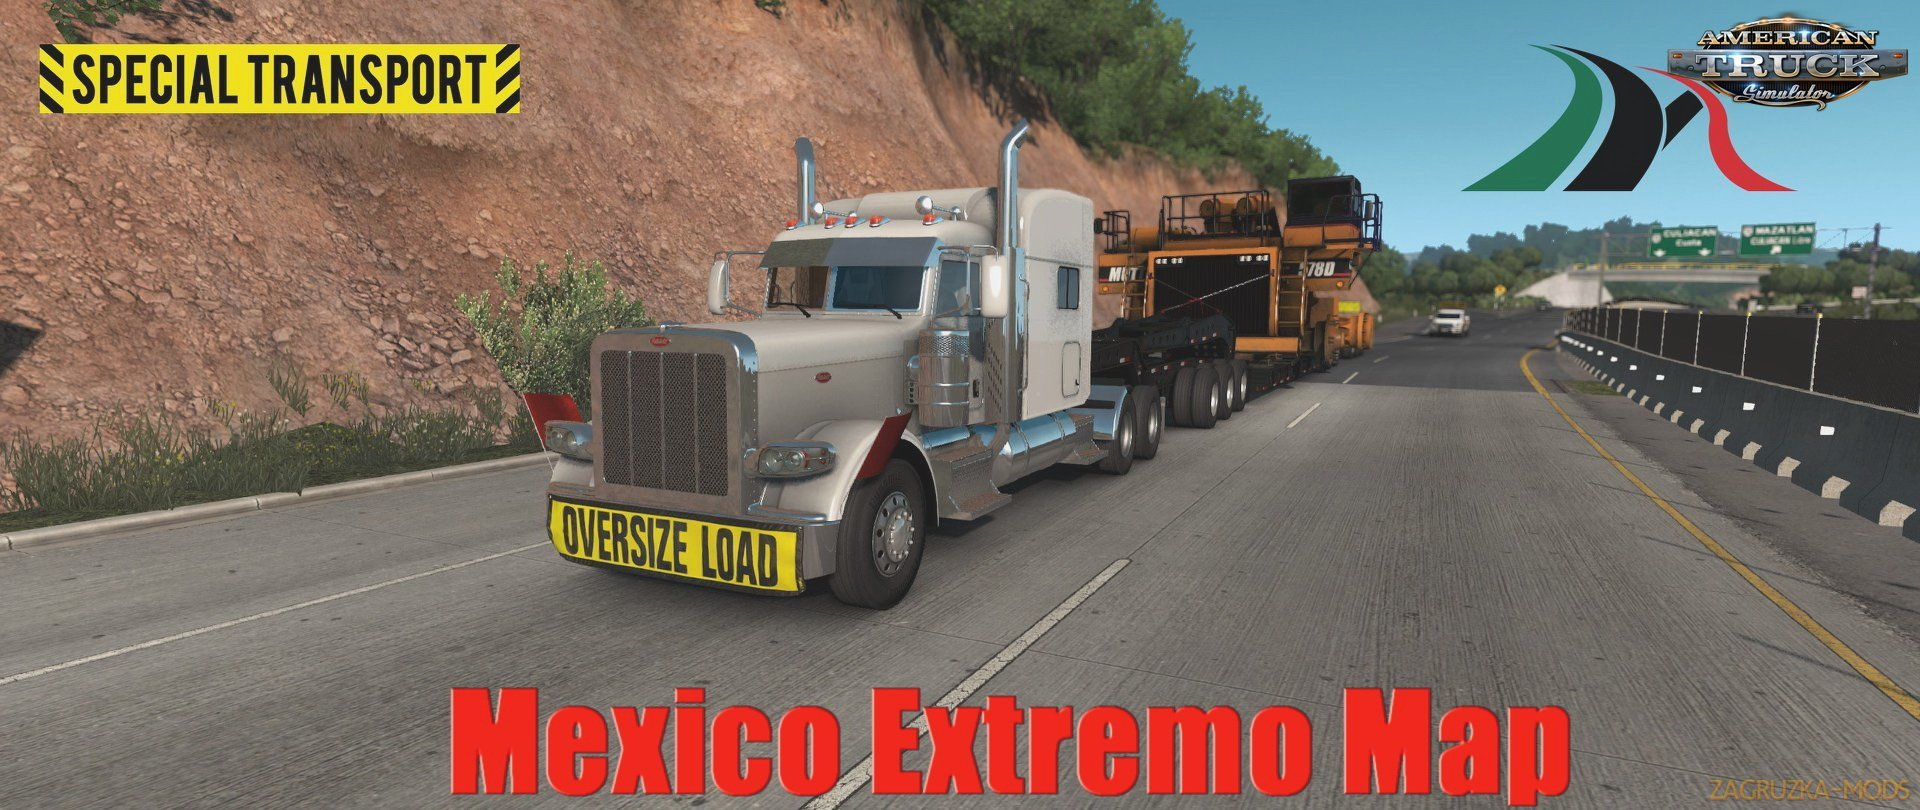 Mexico Extremo Map v2.1.12 (1.37.x) for ATS